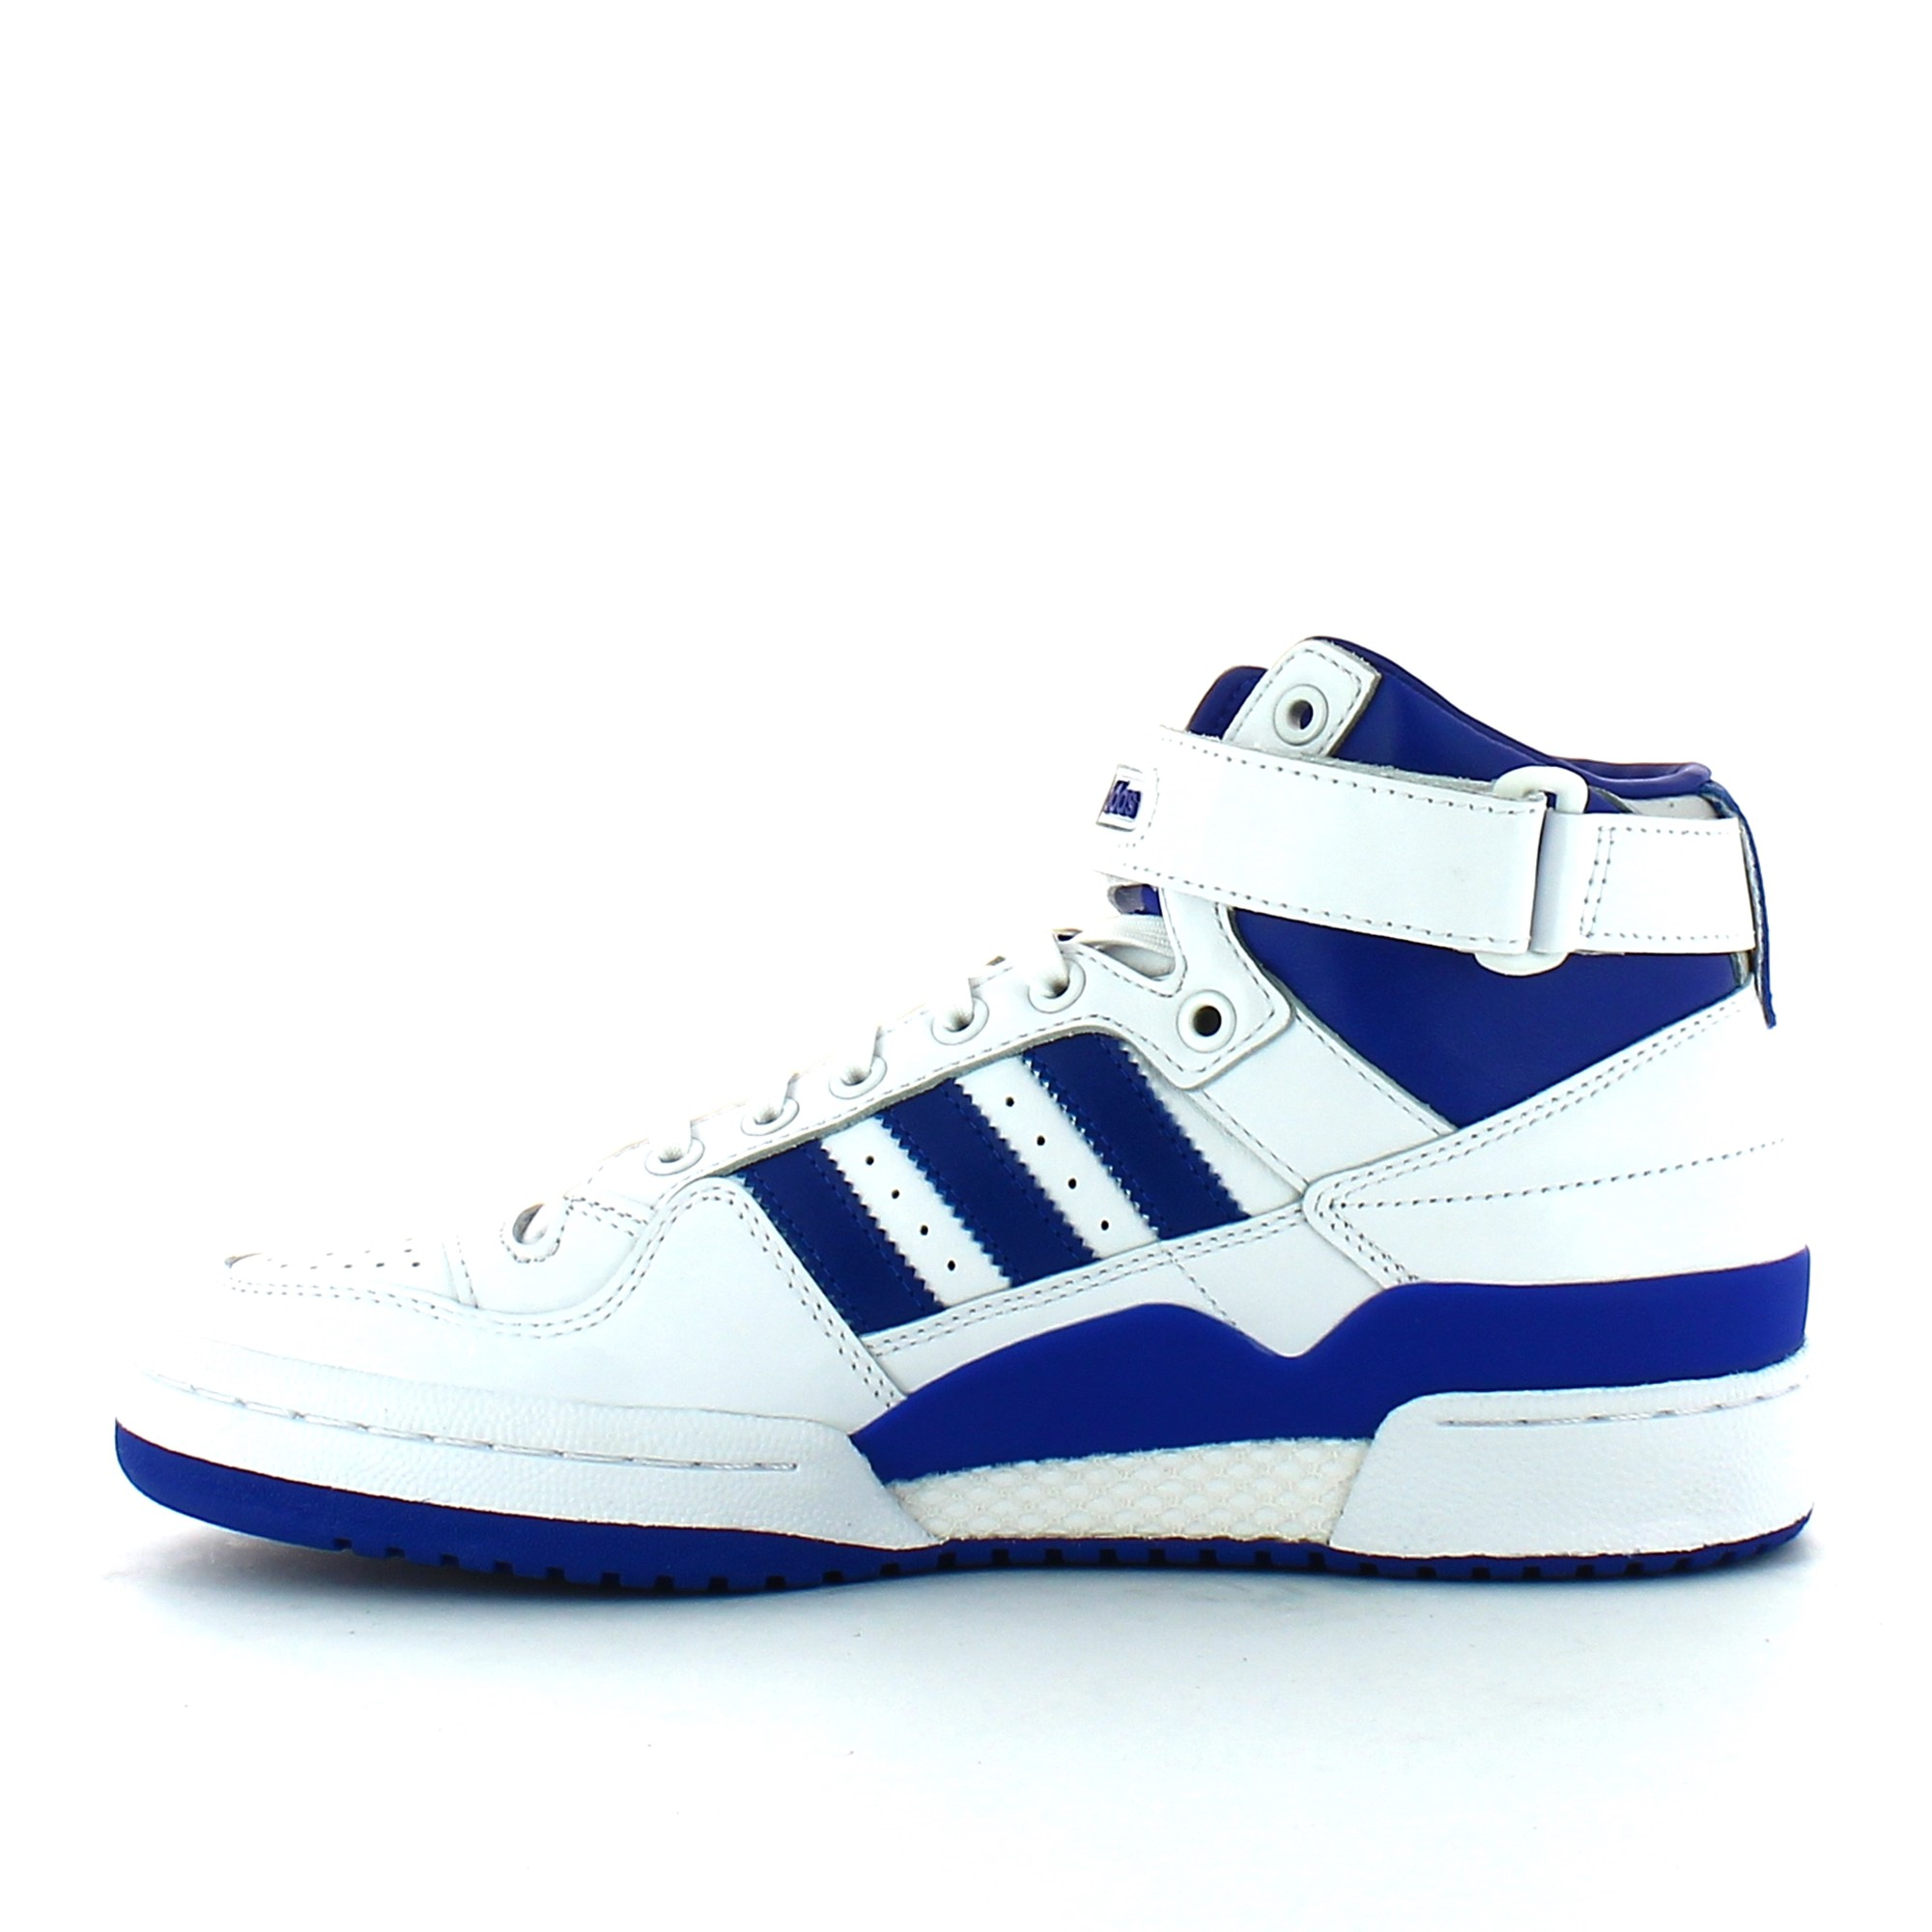 promo code for adidas forum mid blanco azul 1e277 86c57